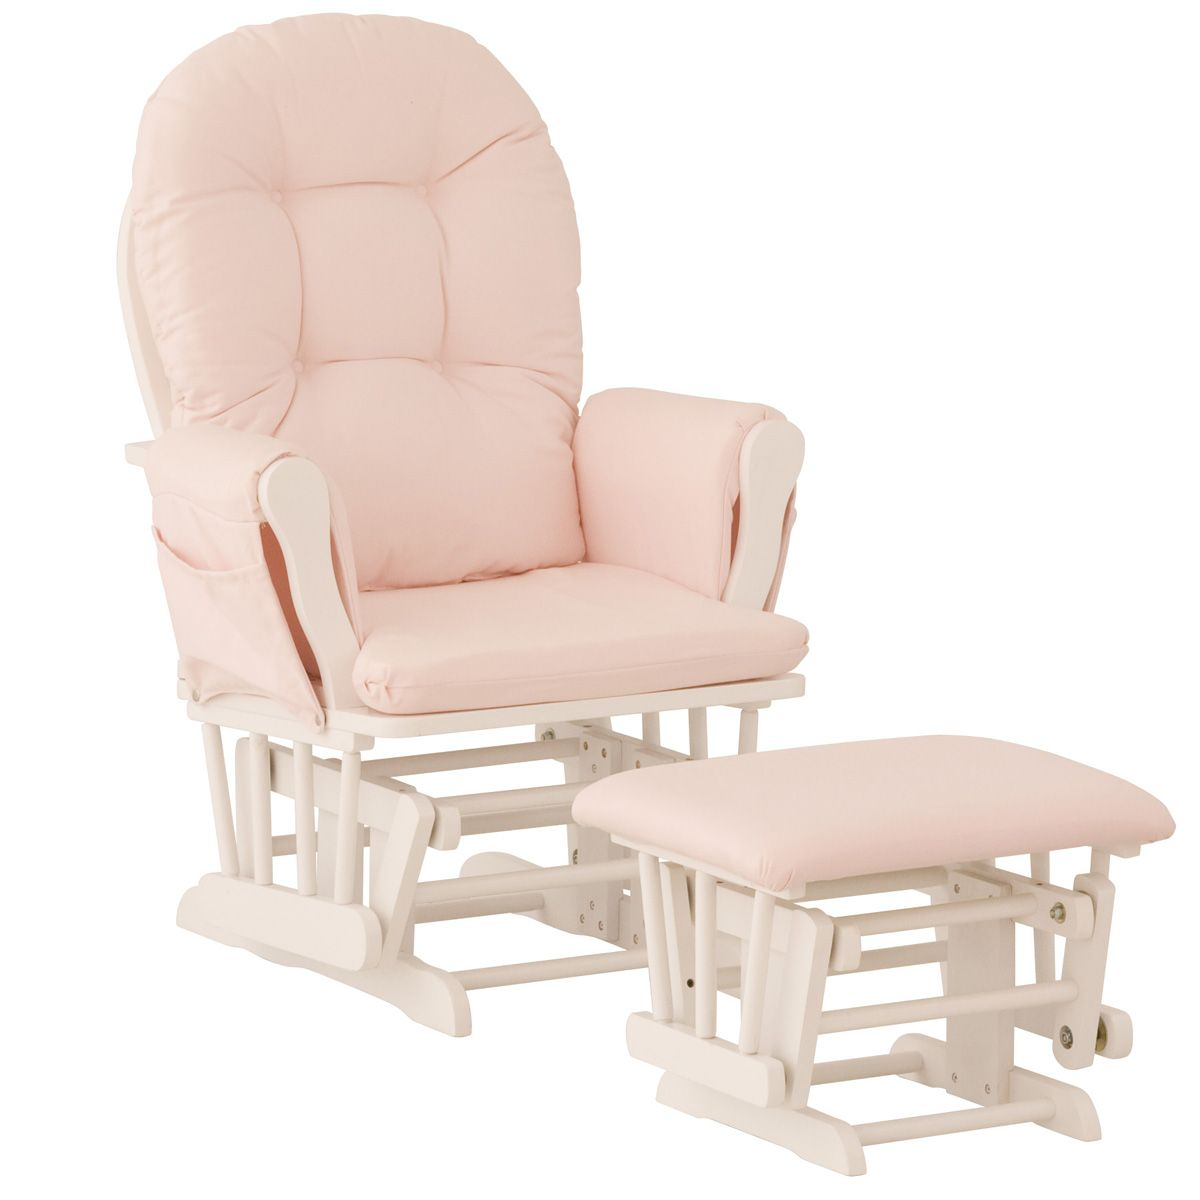 Baby Chair Nursery Glider Chair Baby Rocker Furniture Ottoman Set